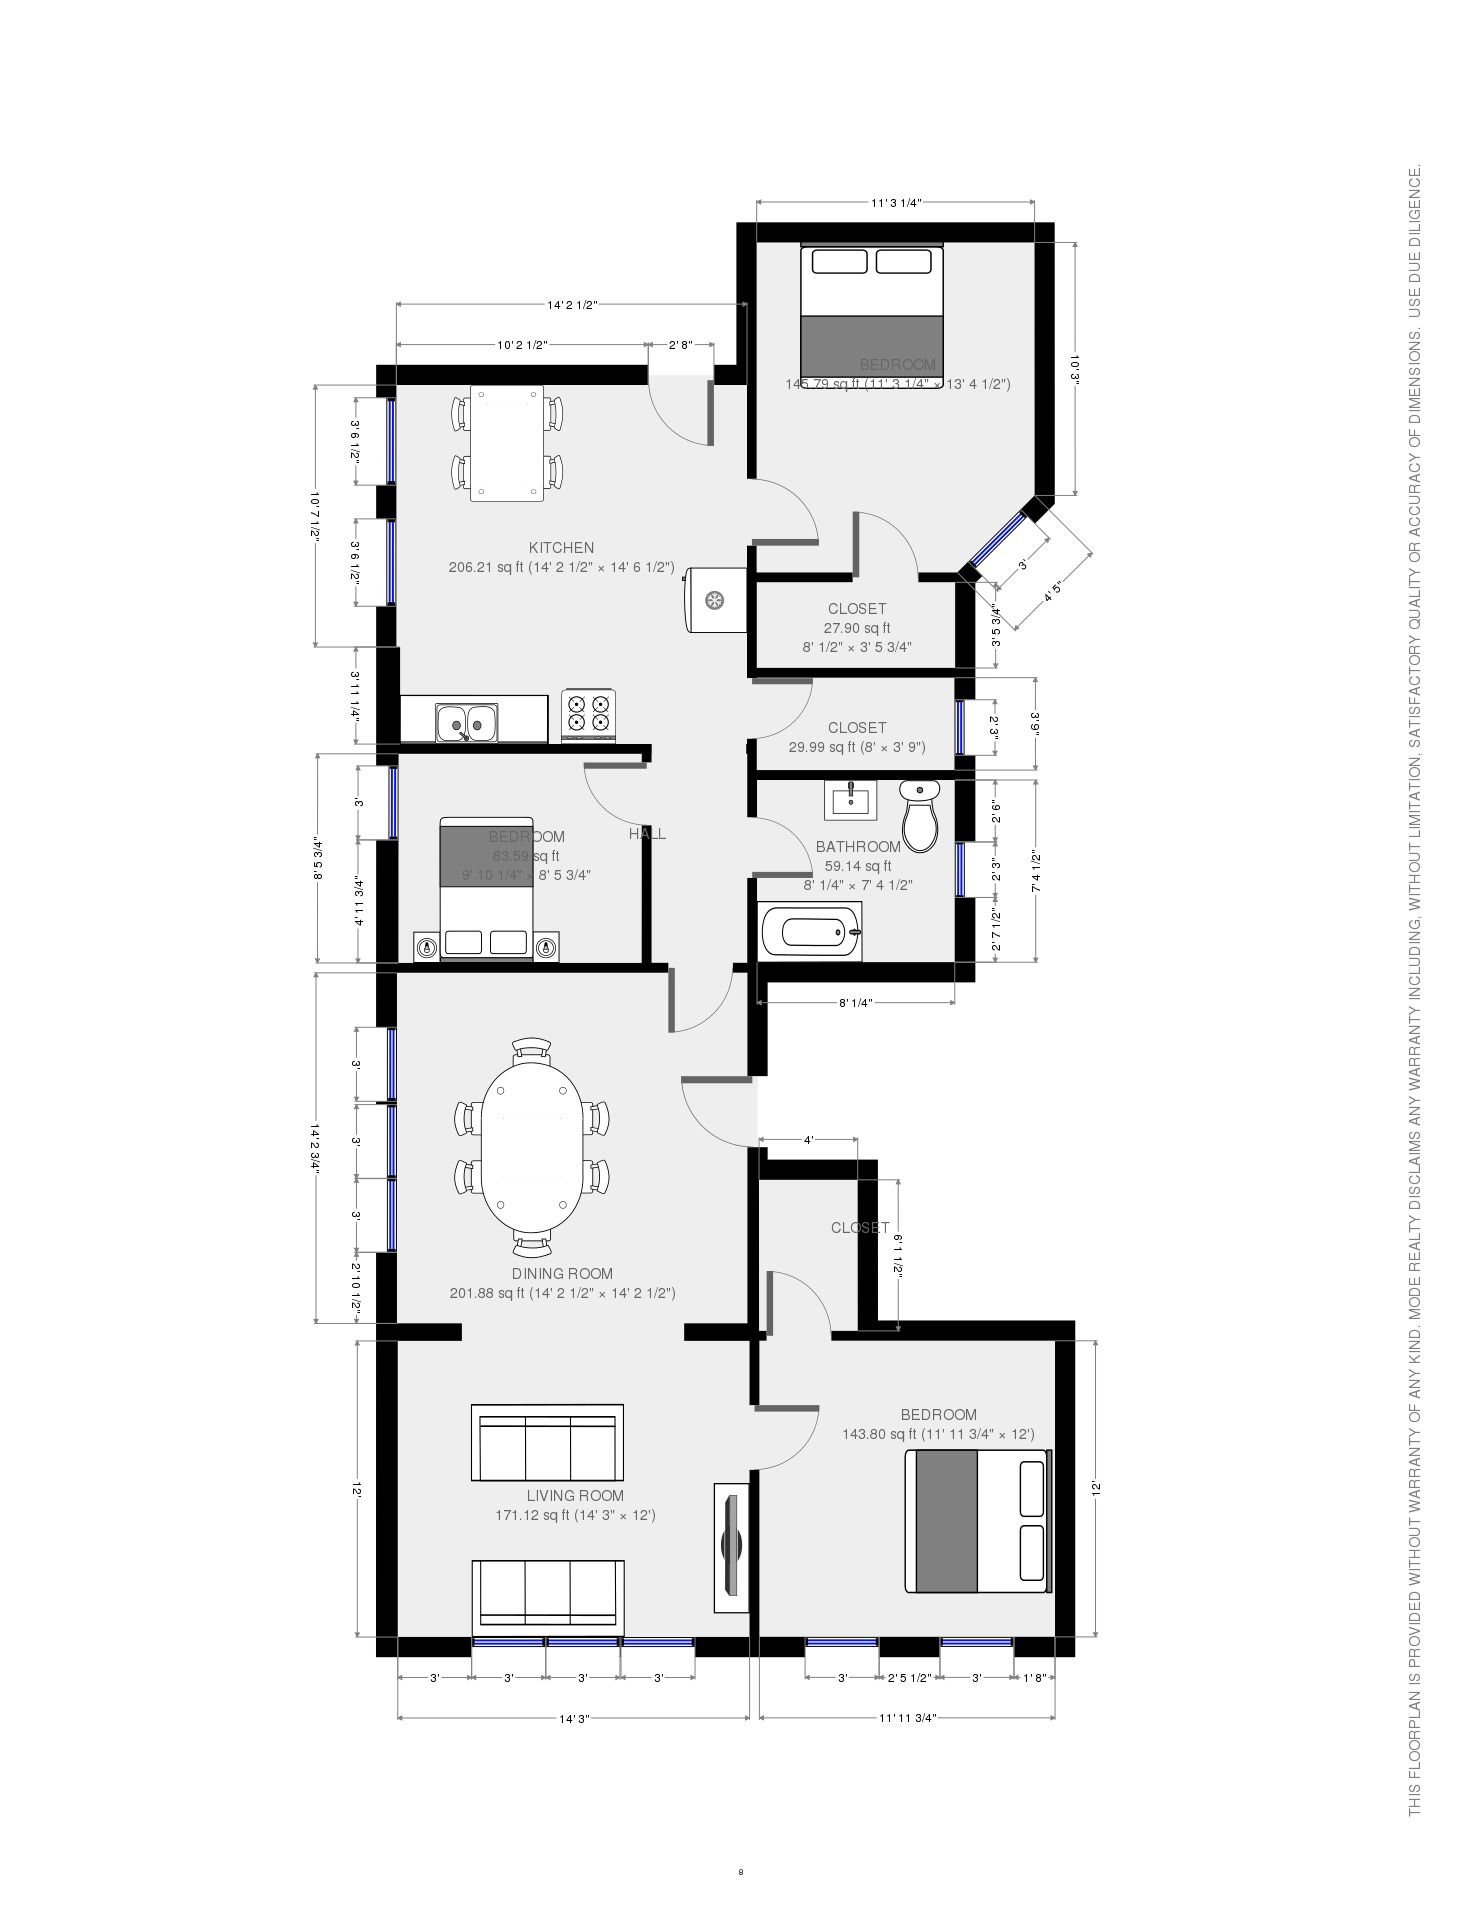 2F Plan thise are King size beds in the 2 bedrooms (BIG BEDROOMS)